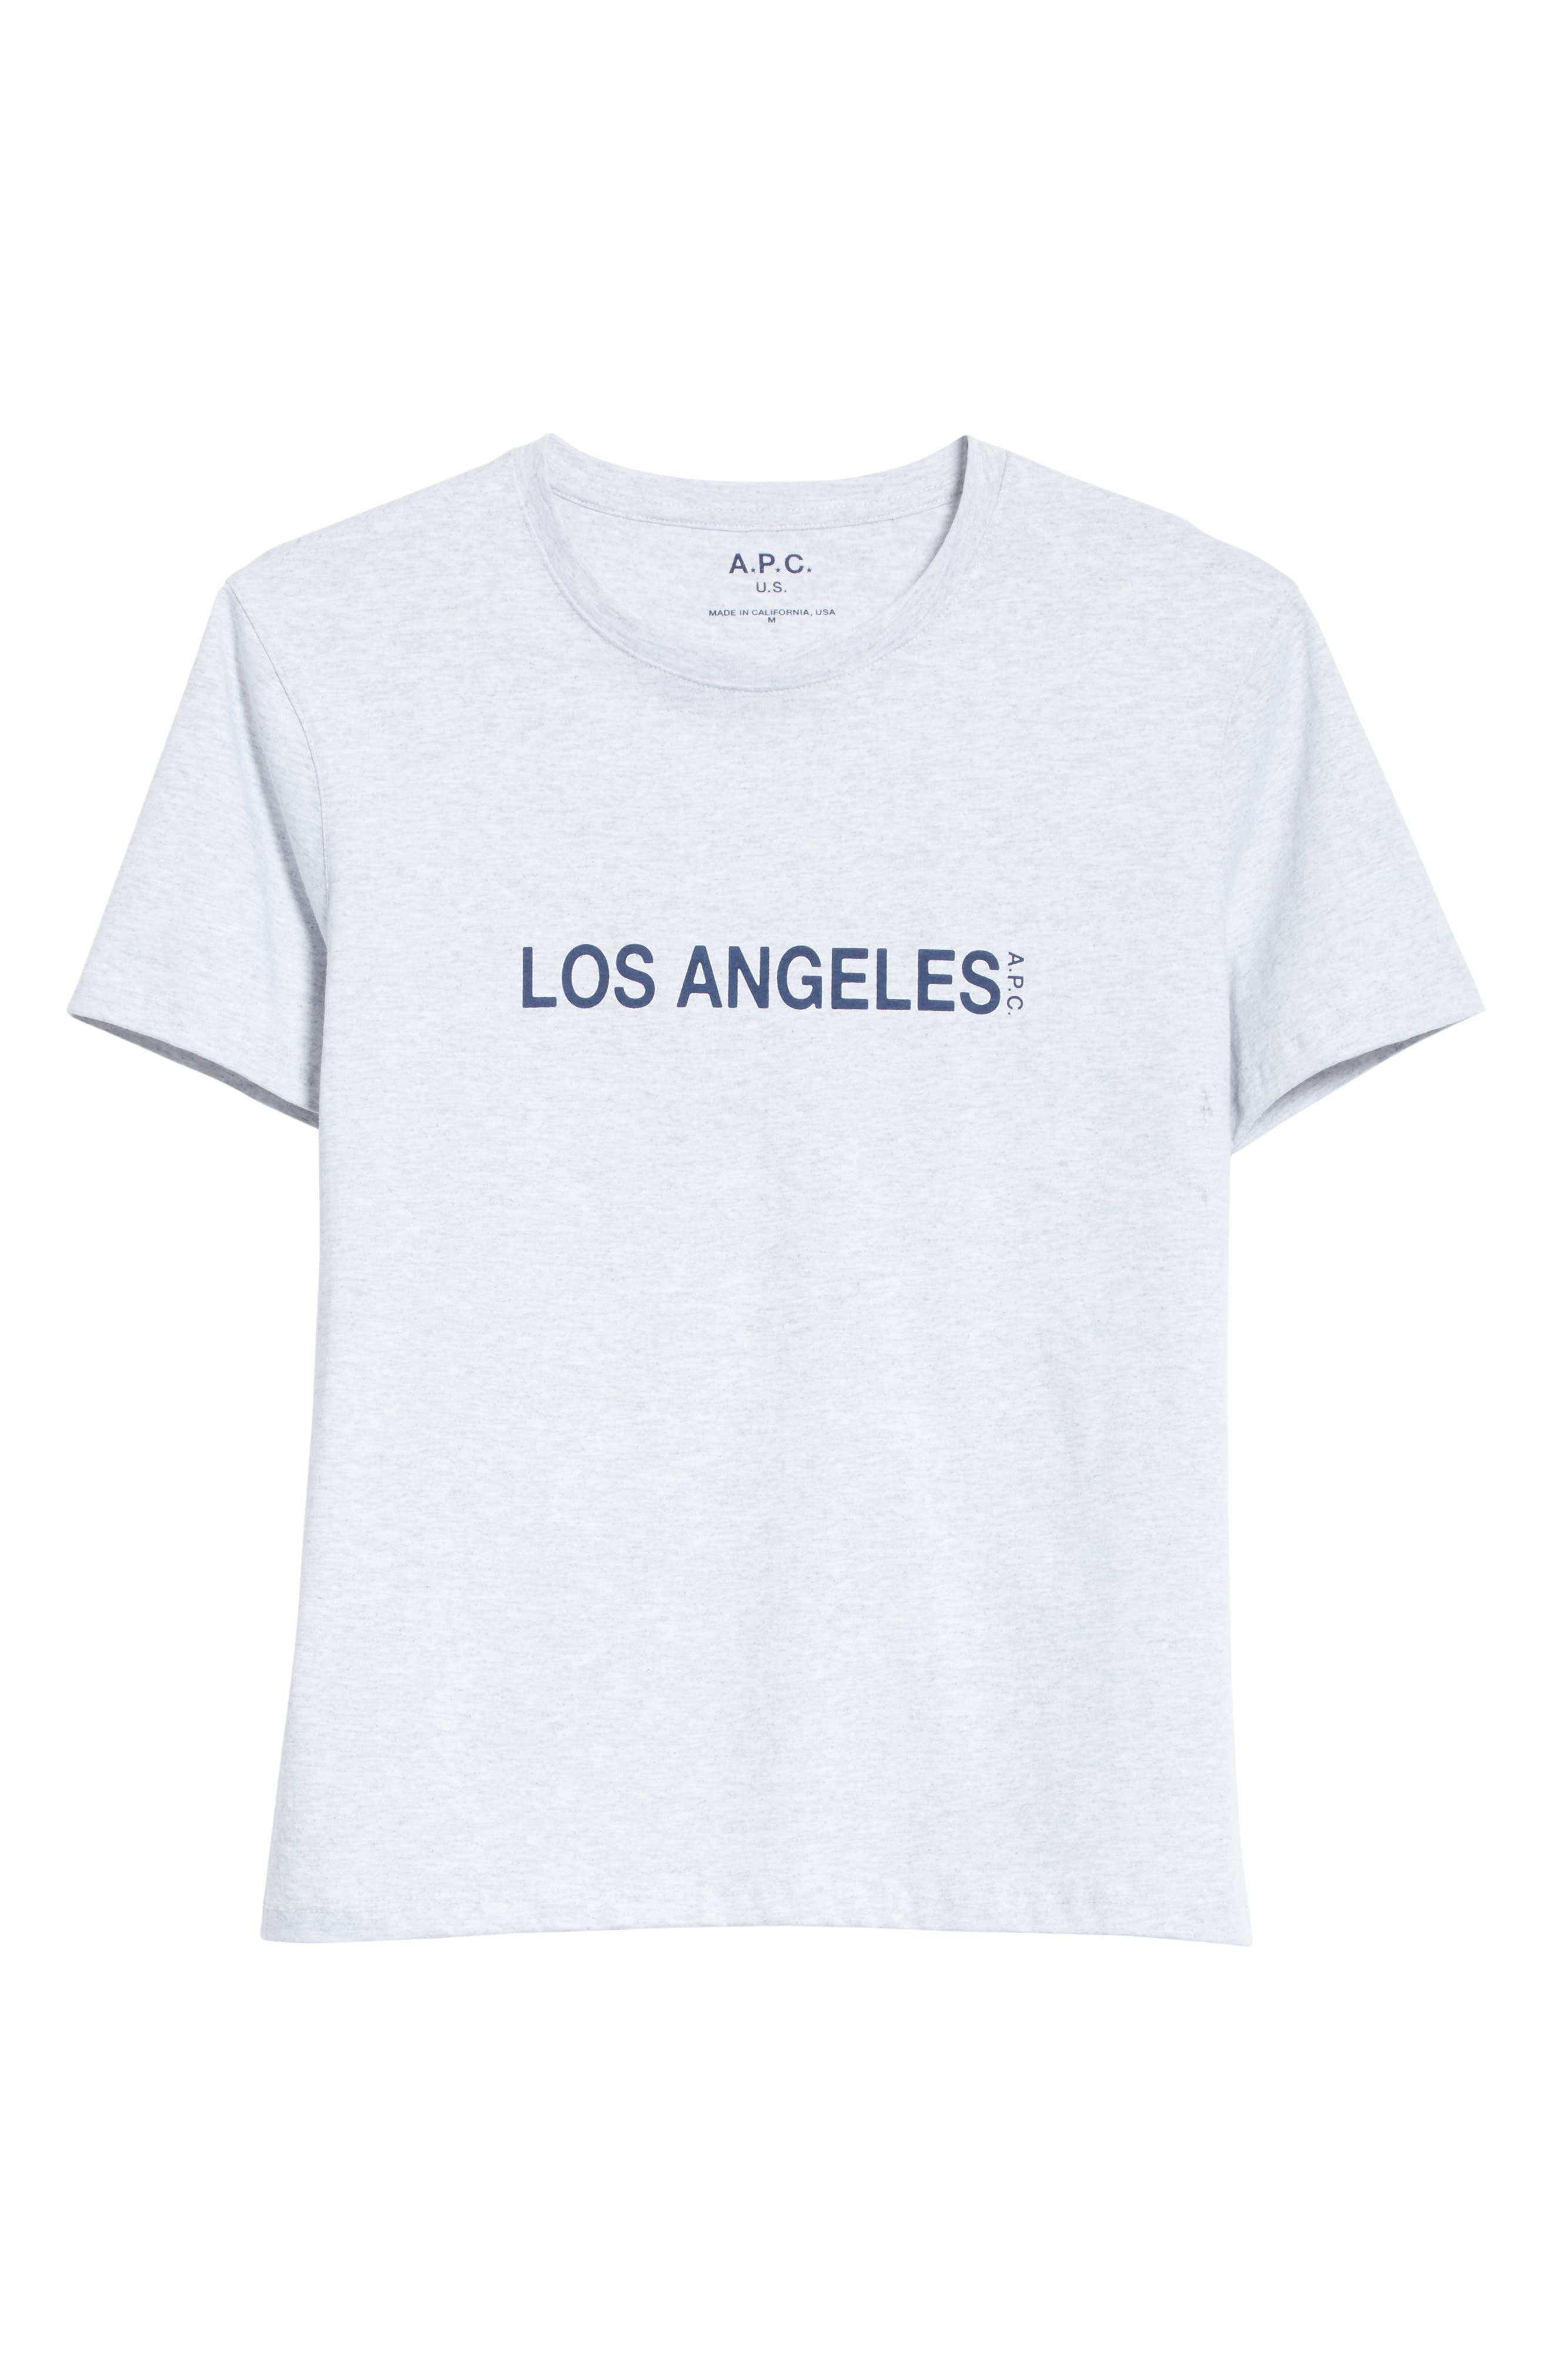 Los Angeles Graphic T-Shirt,                             Alternate thumbnail 6, color,                             Gris Chine Pla